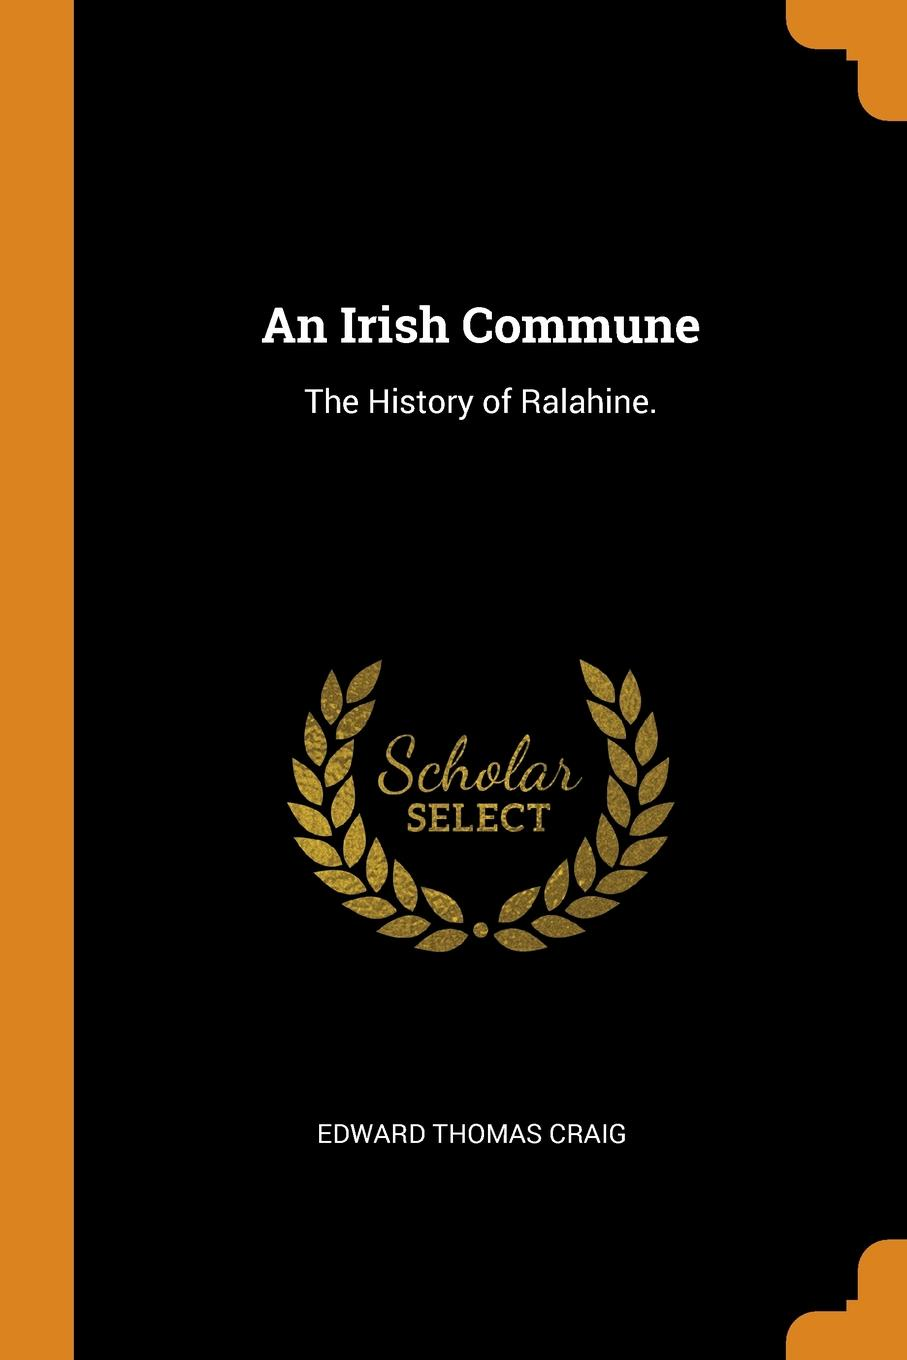 An Irish Commune. The History of Ralahine.